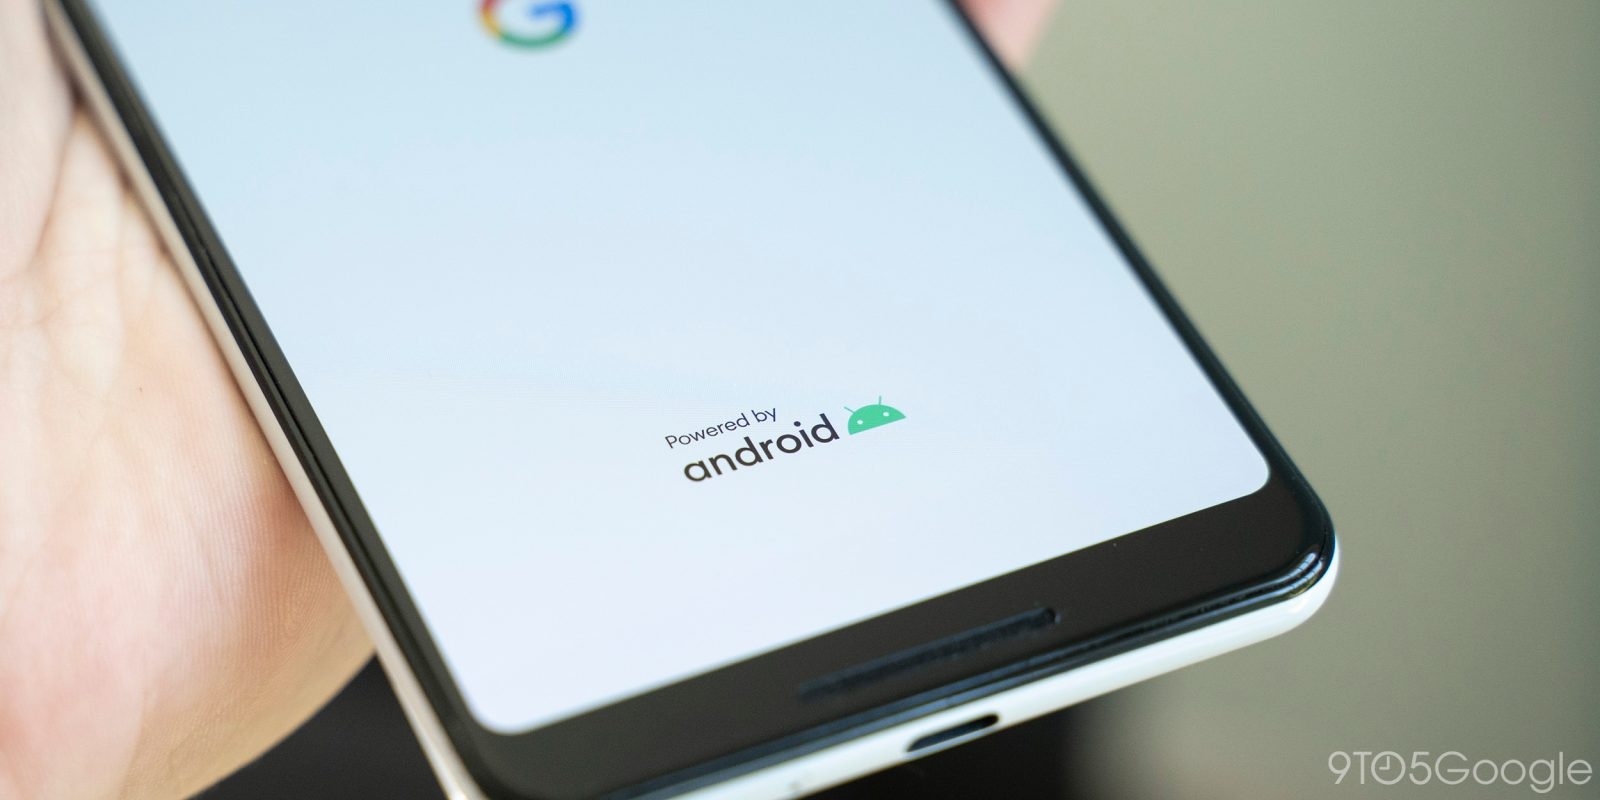 Google to require updated 'Powered by Android' w/ new branding starting in 2020